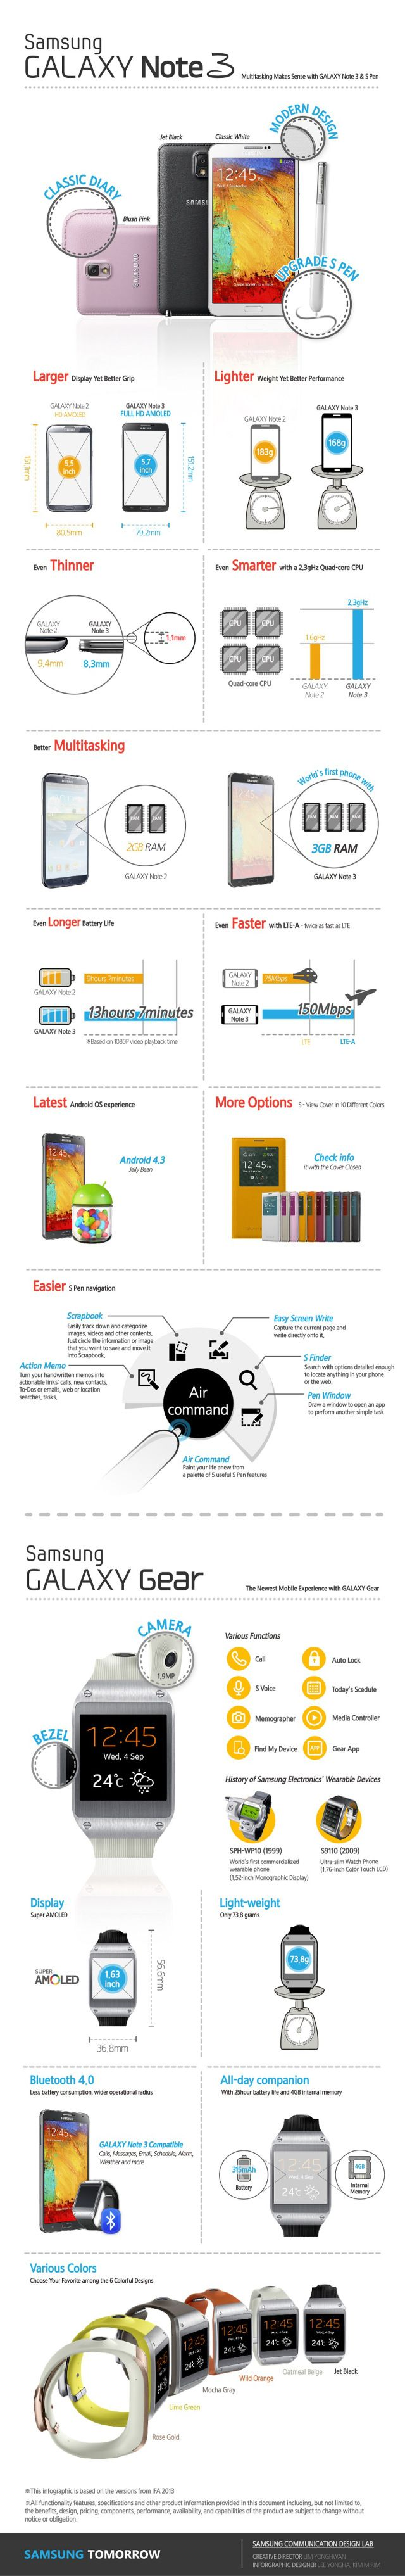 How to use scrapbook on galaxy note 3 - Infografia Samsung Galaxy Note 3 Y Samsung Galaxy Gear